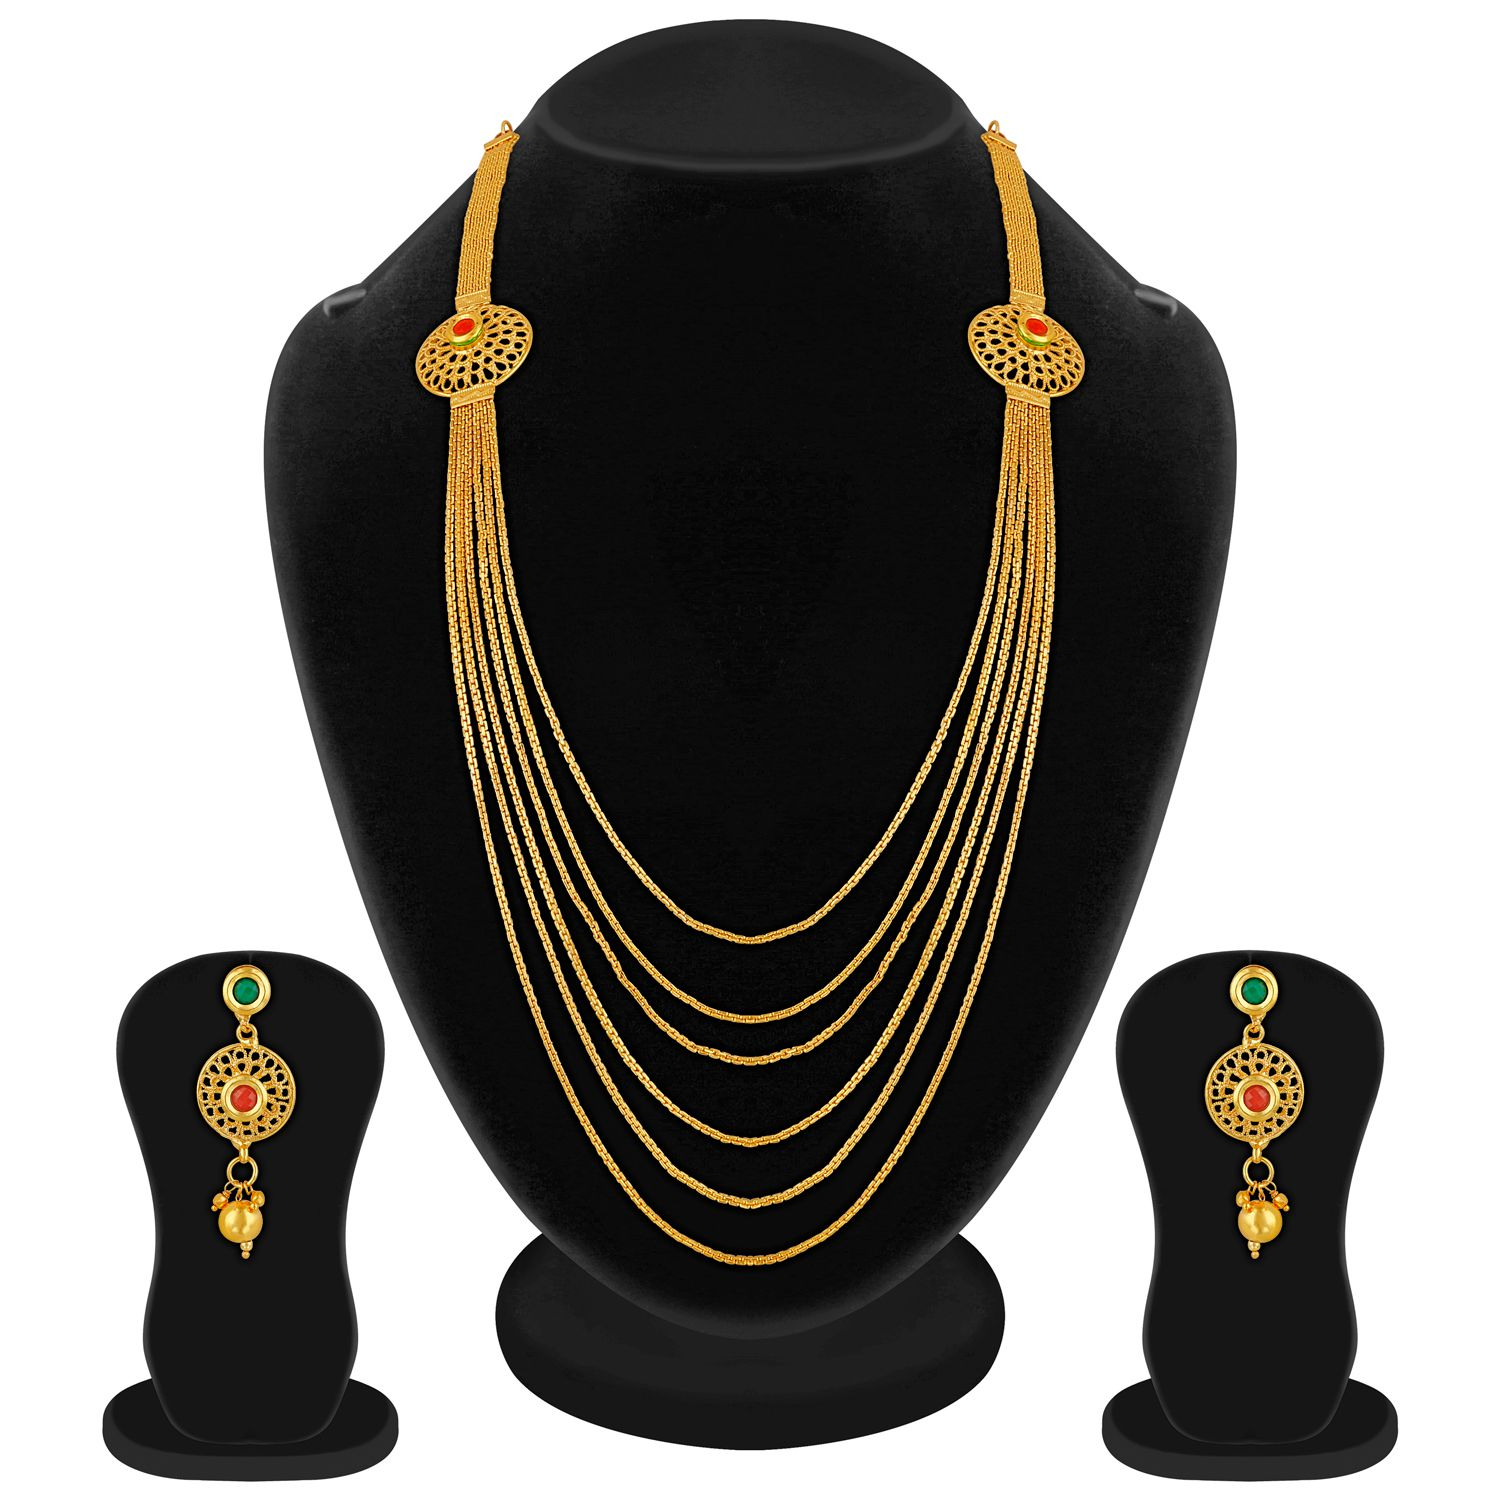 Apara South Indian Gold Plated Jewellery Set for Women